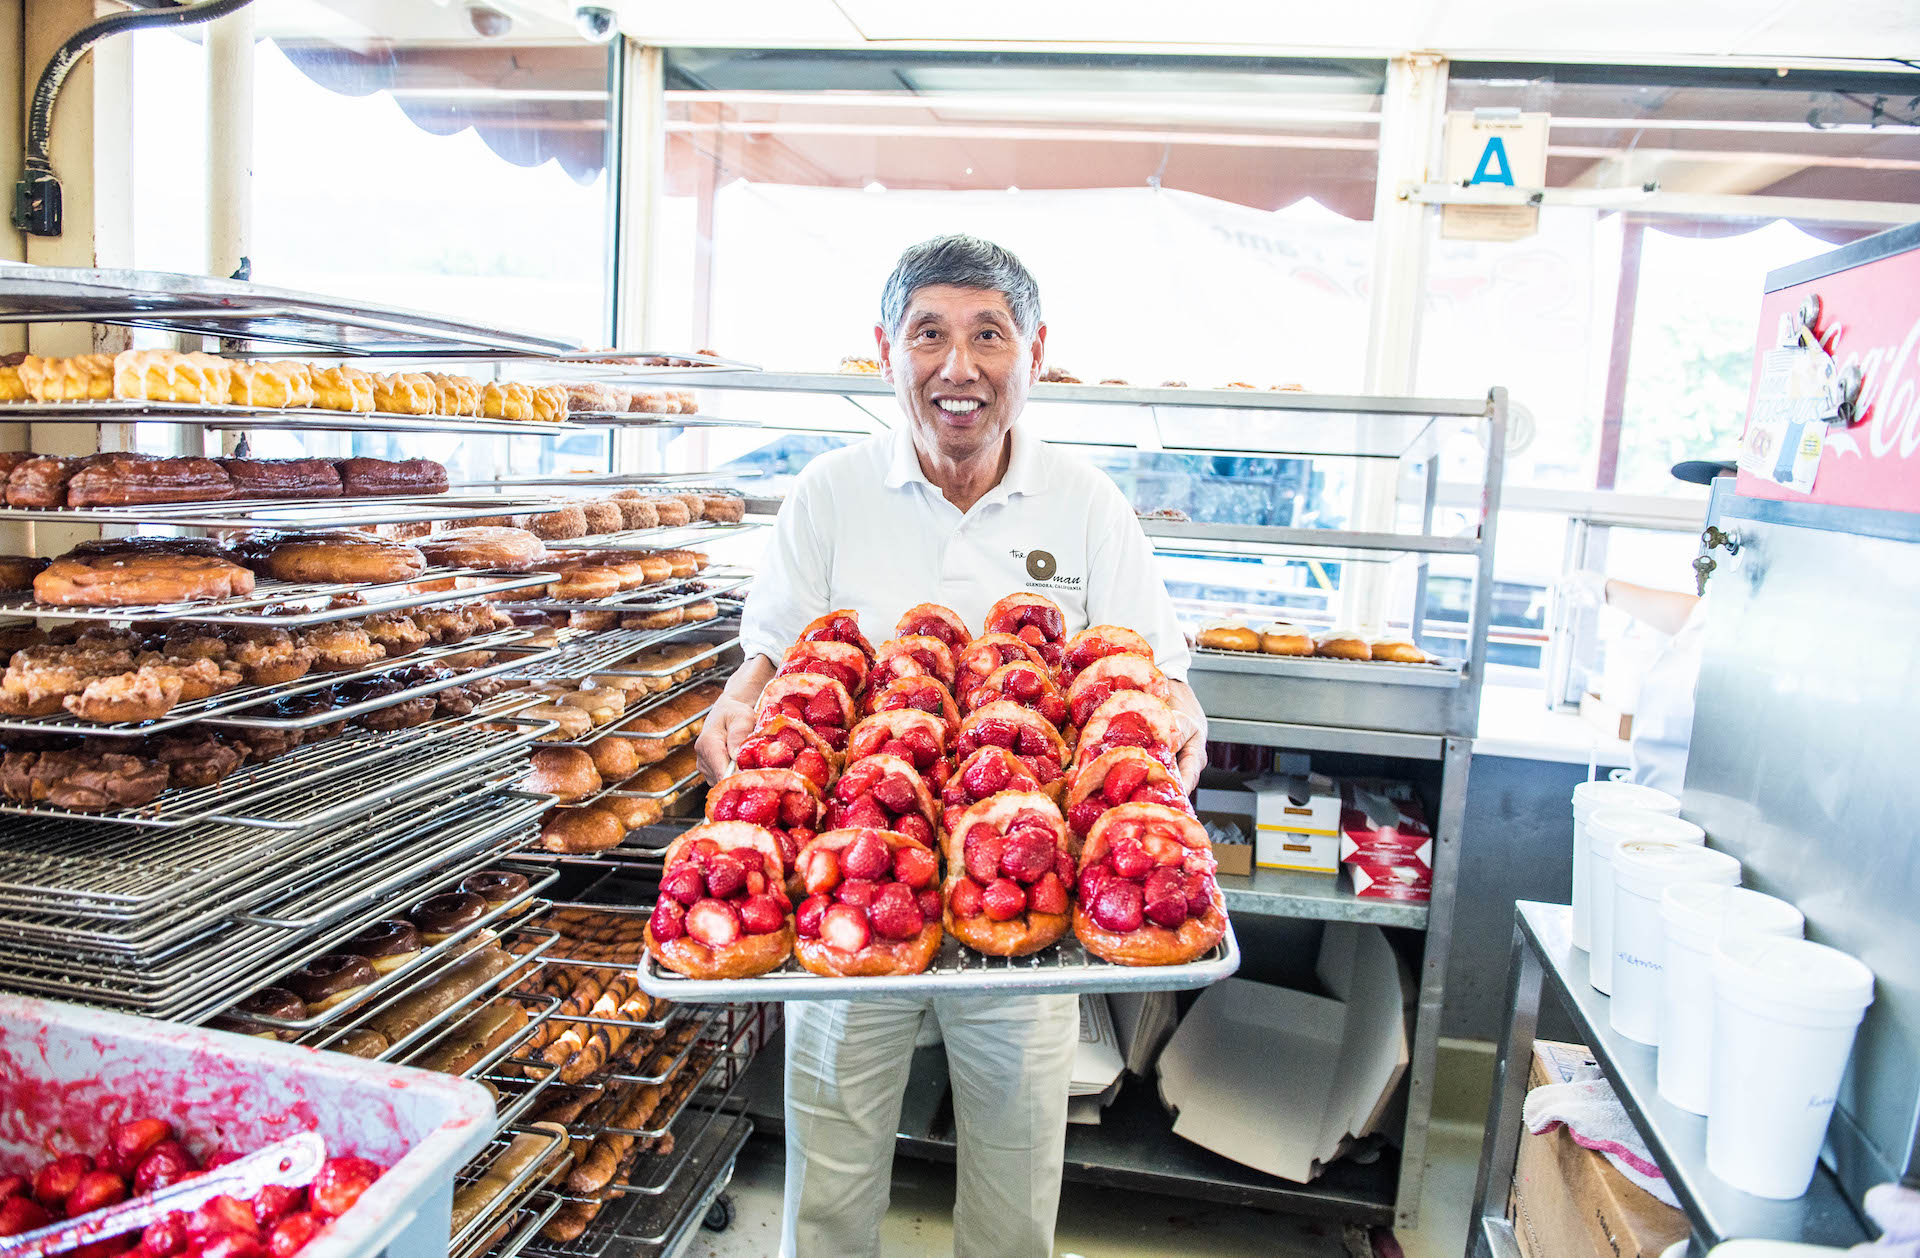 Jim Nakano, the Donut Man, and his famous strawberry donuts.